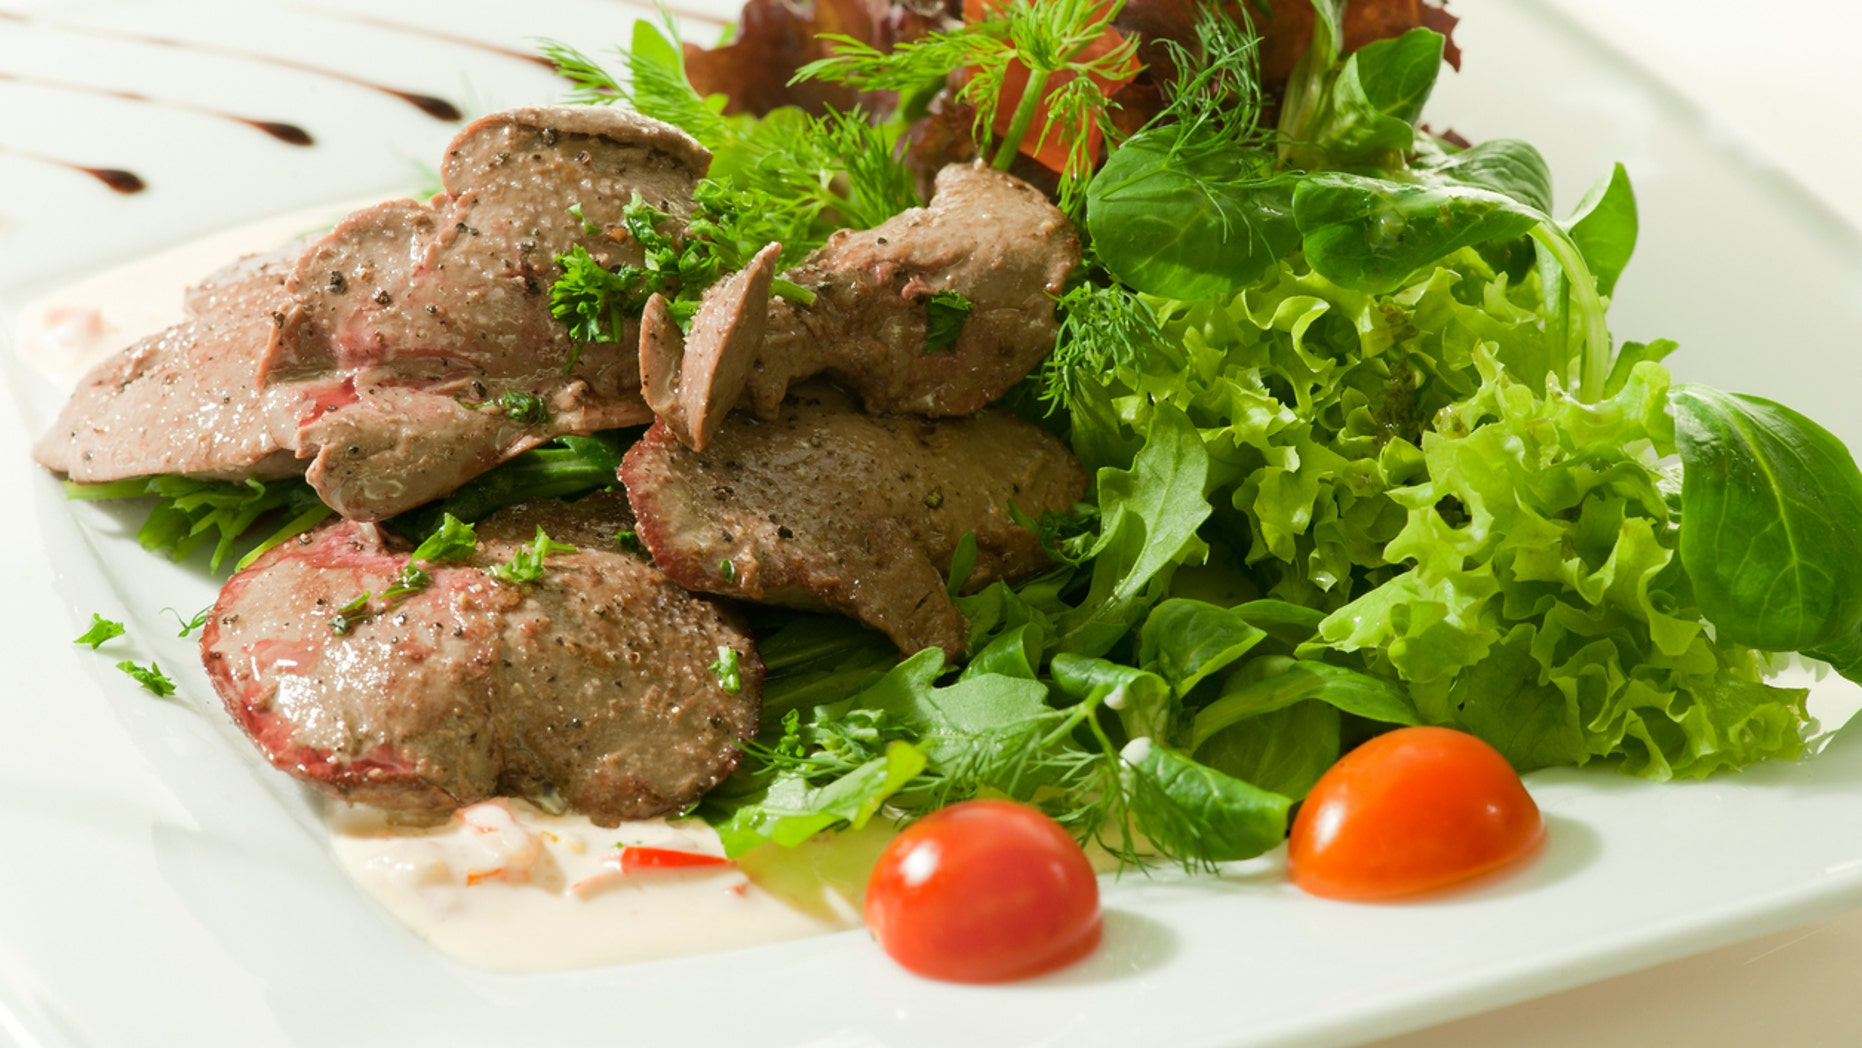 Main course: Grilled liver with a side salad.